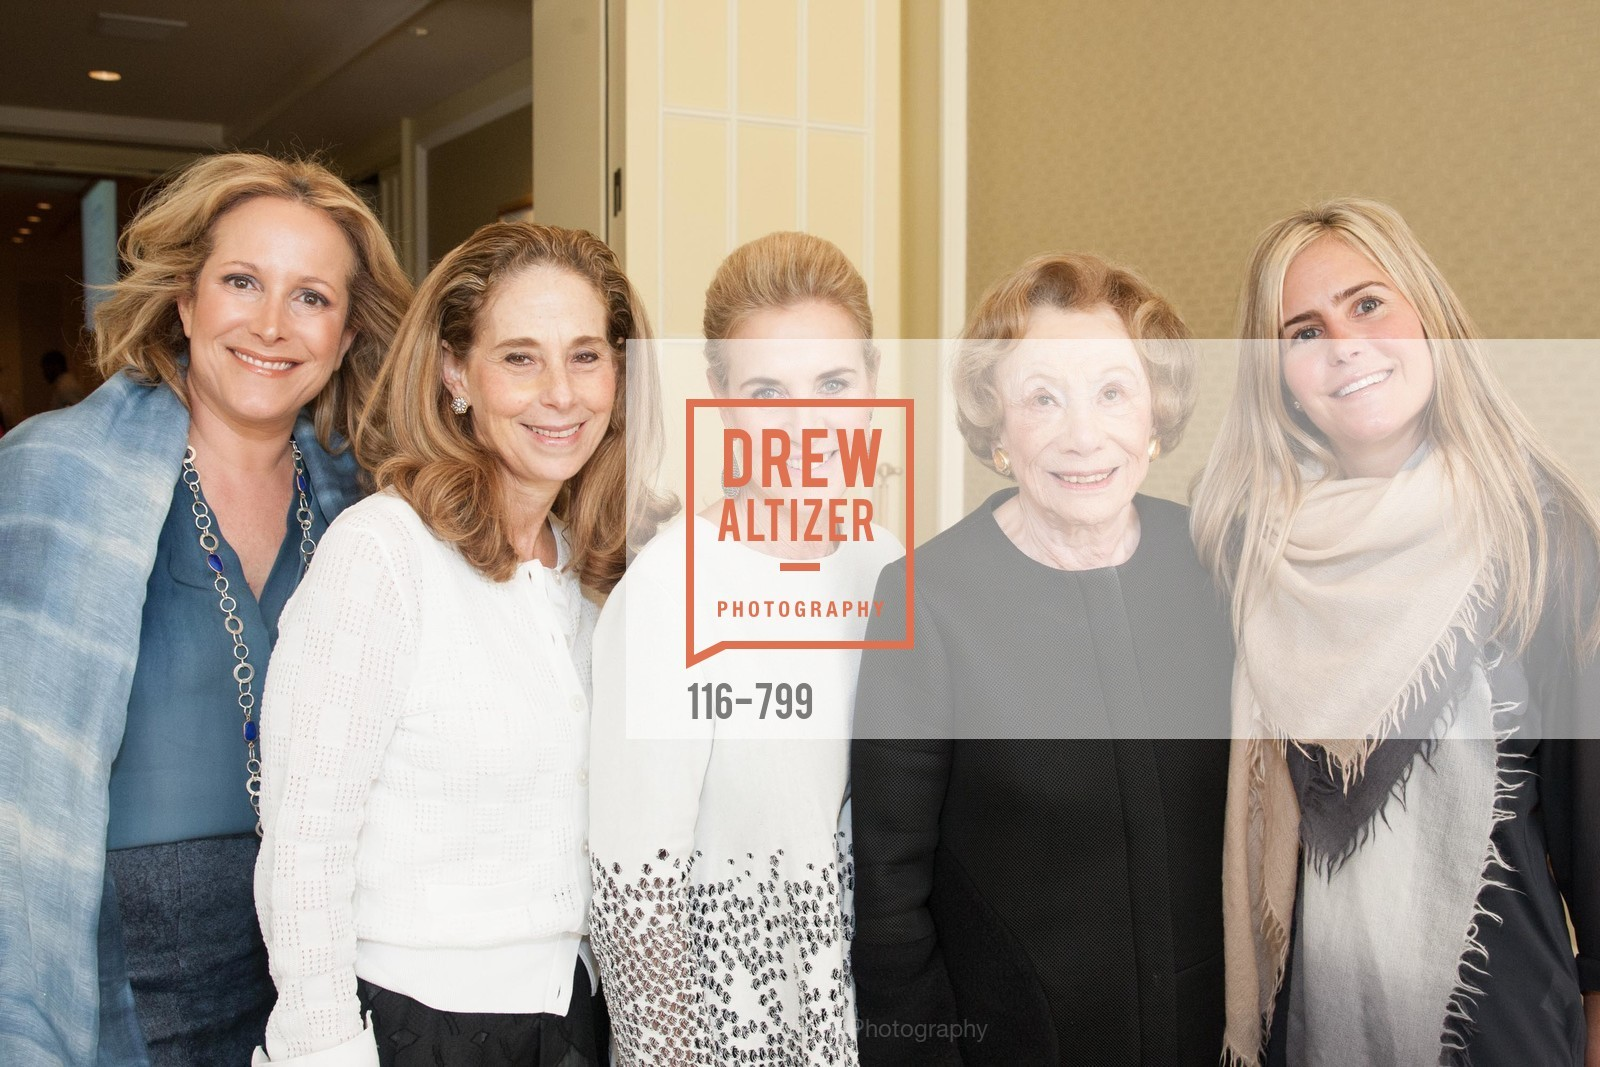 Lorre Erlick, Patsy Lurie, Lisa Goldman, Elleanor Myers, COMPASSION & CHOICES - Empowerment Luncheon, US, April 24th, 2015,Drew Altizer, Drew Altizer Photography, full-service event agency, private events, San Francisco photographer, photographer California